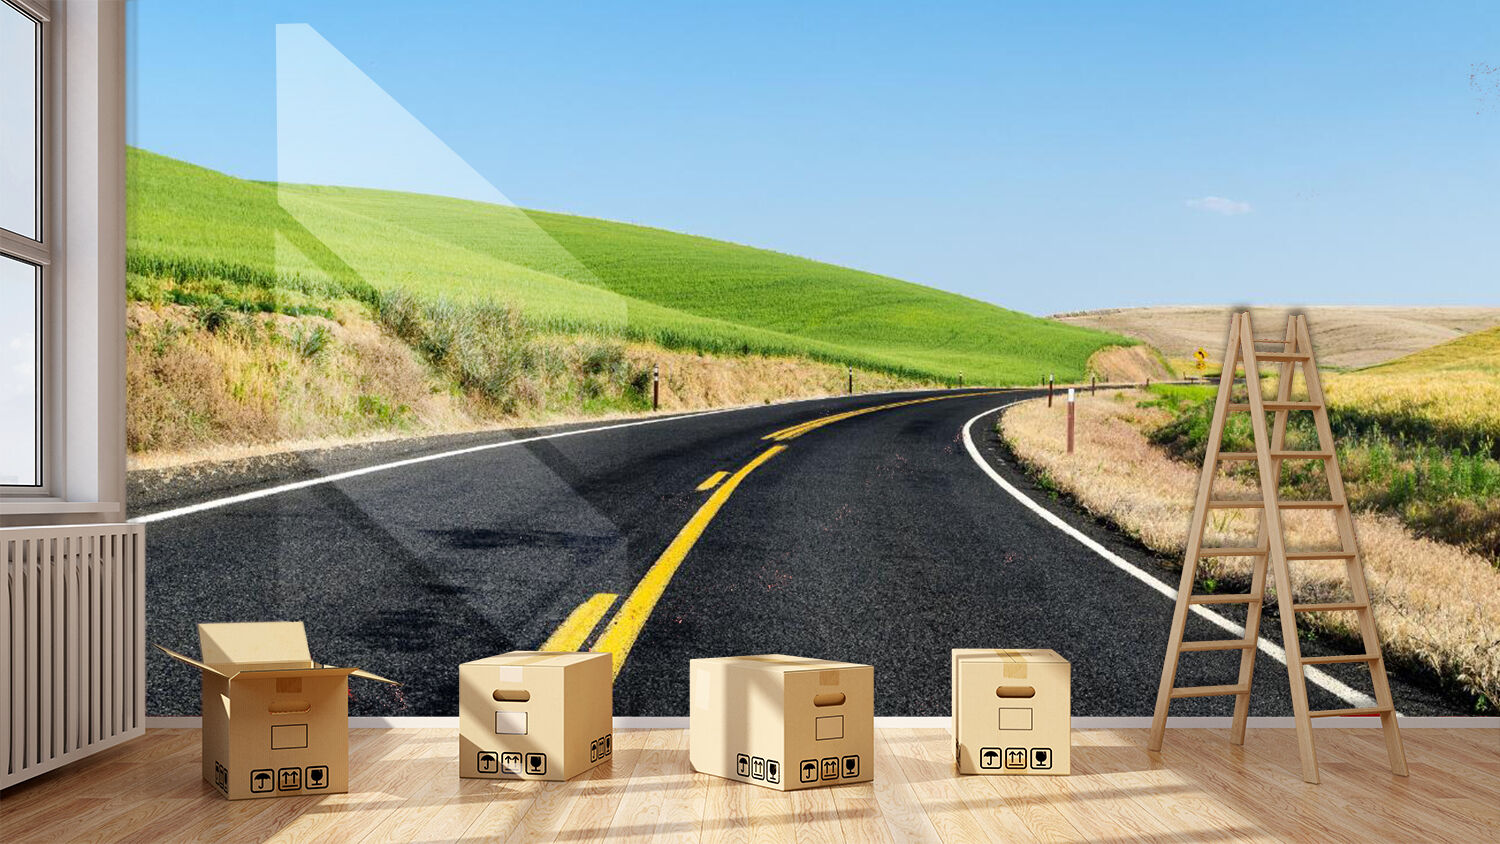 3D Highway lawn 2655 Wall Paper Wall Print Decal Wall Deco Indoor Wall Murals